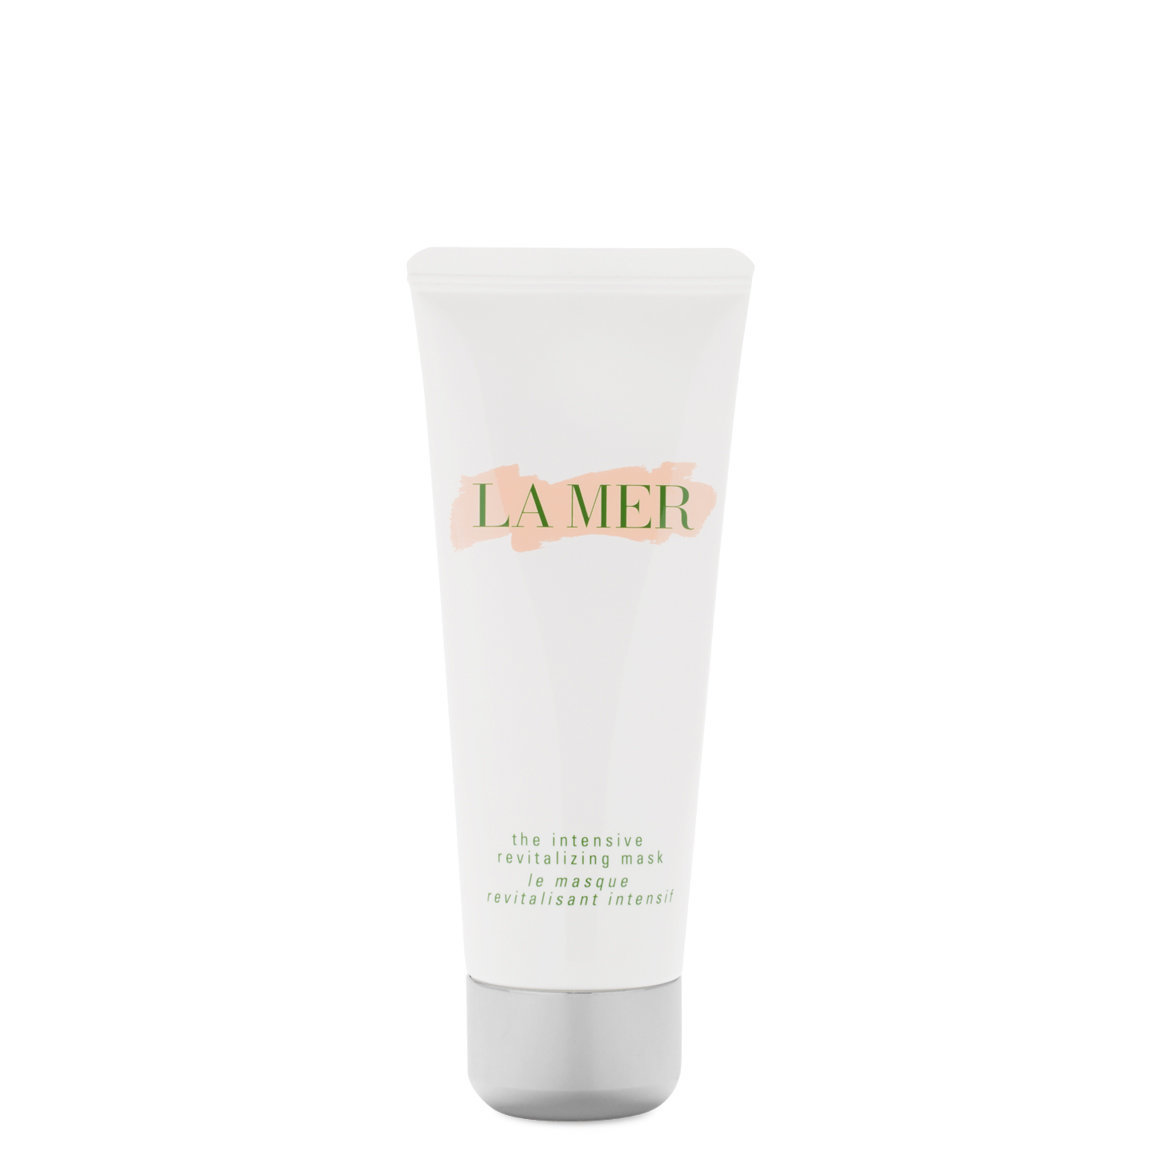 La Mer The Intensive Revitalizing Mask product smear.